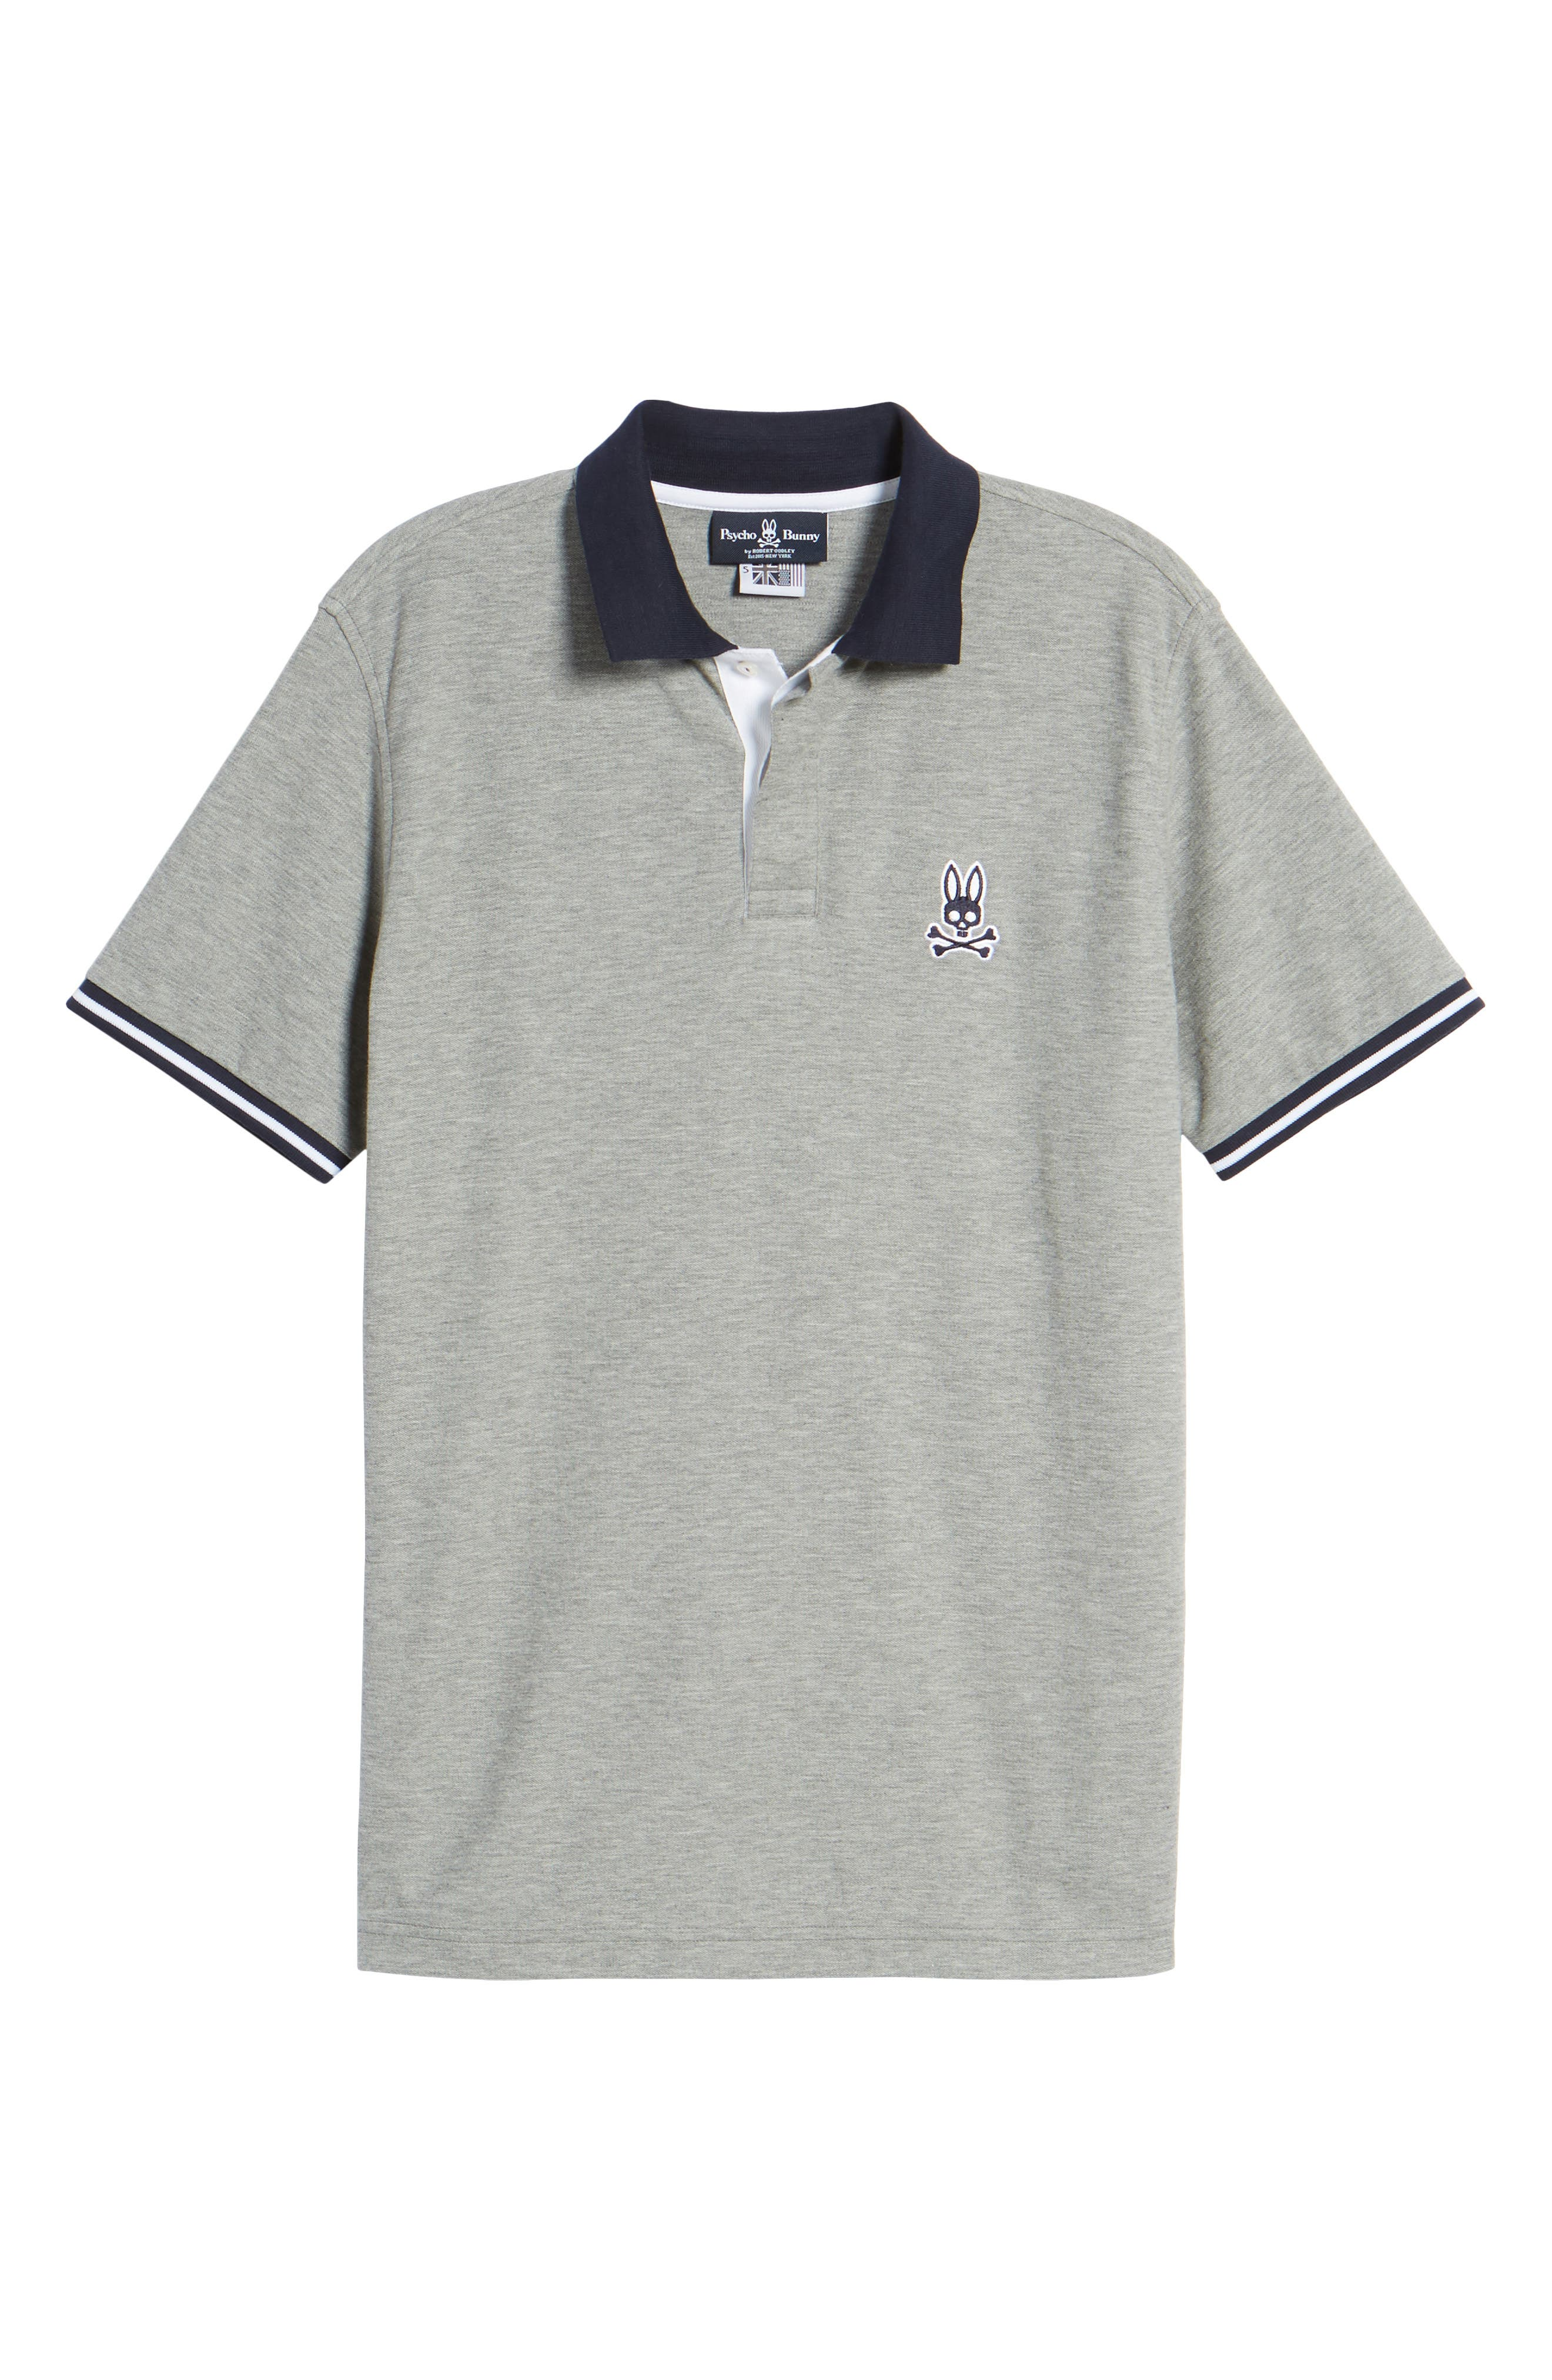 St. Ives Polo,                             Alternate thumbnail 6, color,                             Heather Grey